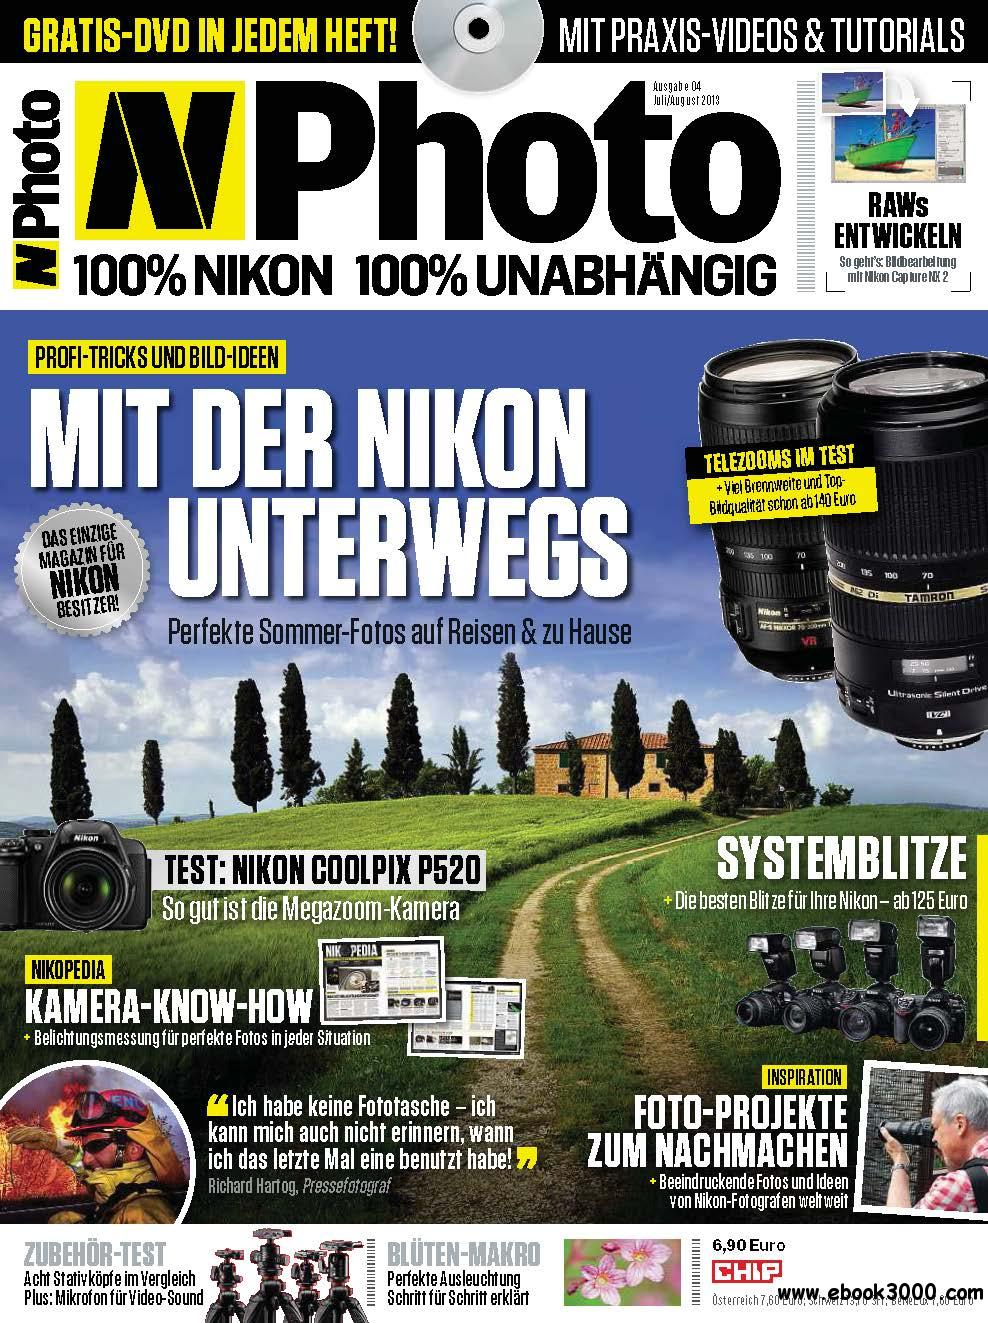 CHIP N-Photo - Magazin fur Nikon-Besitzer Juli/August 04/2013 download dree